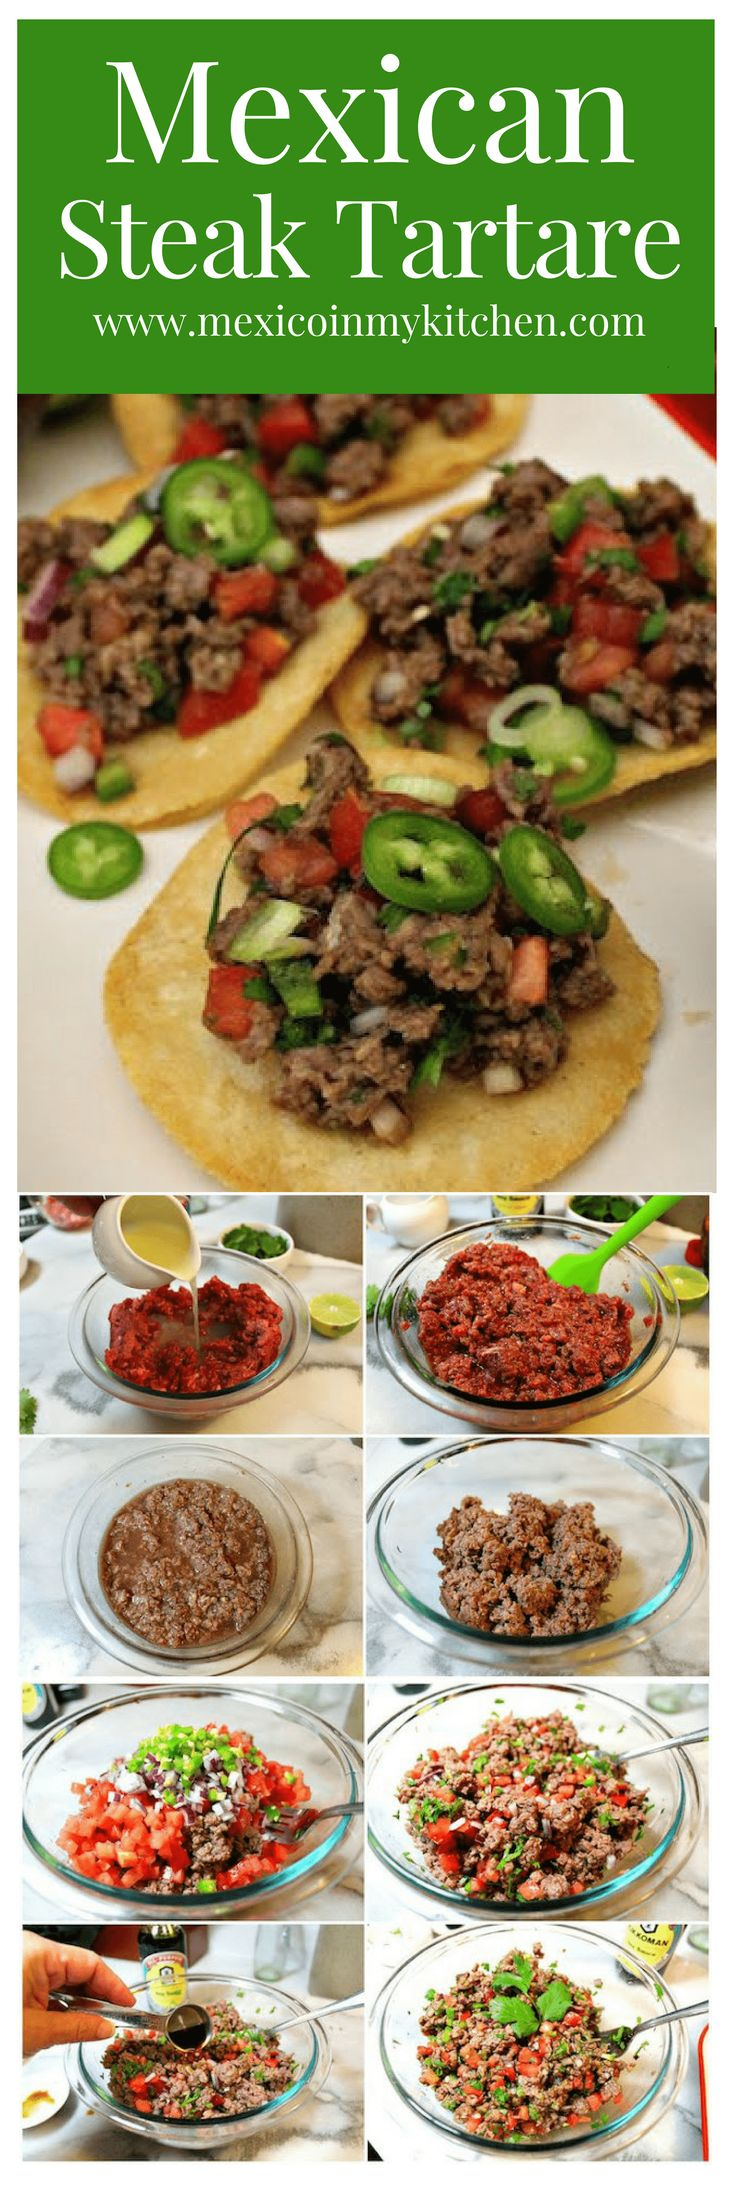 This appetizer is all the rage with men, it is meat after all! In Mexico, men enjoy preparing carne tártara and having it with cold beers, while watching a soccer game with friends or just having a good time with the family.#mexicanrecipes #appetizers #mexicancuisine